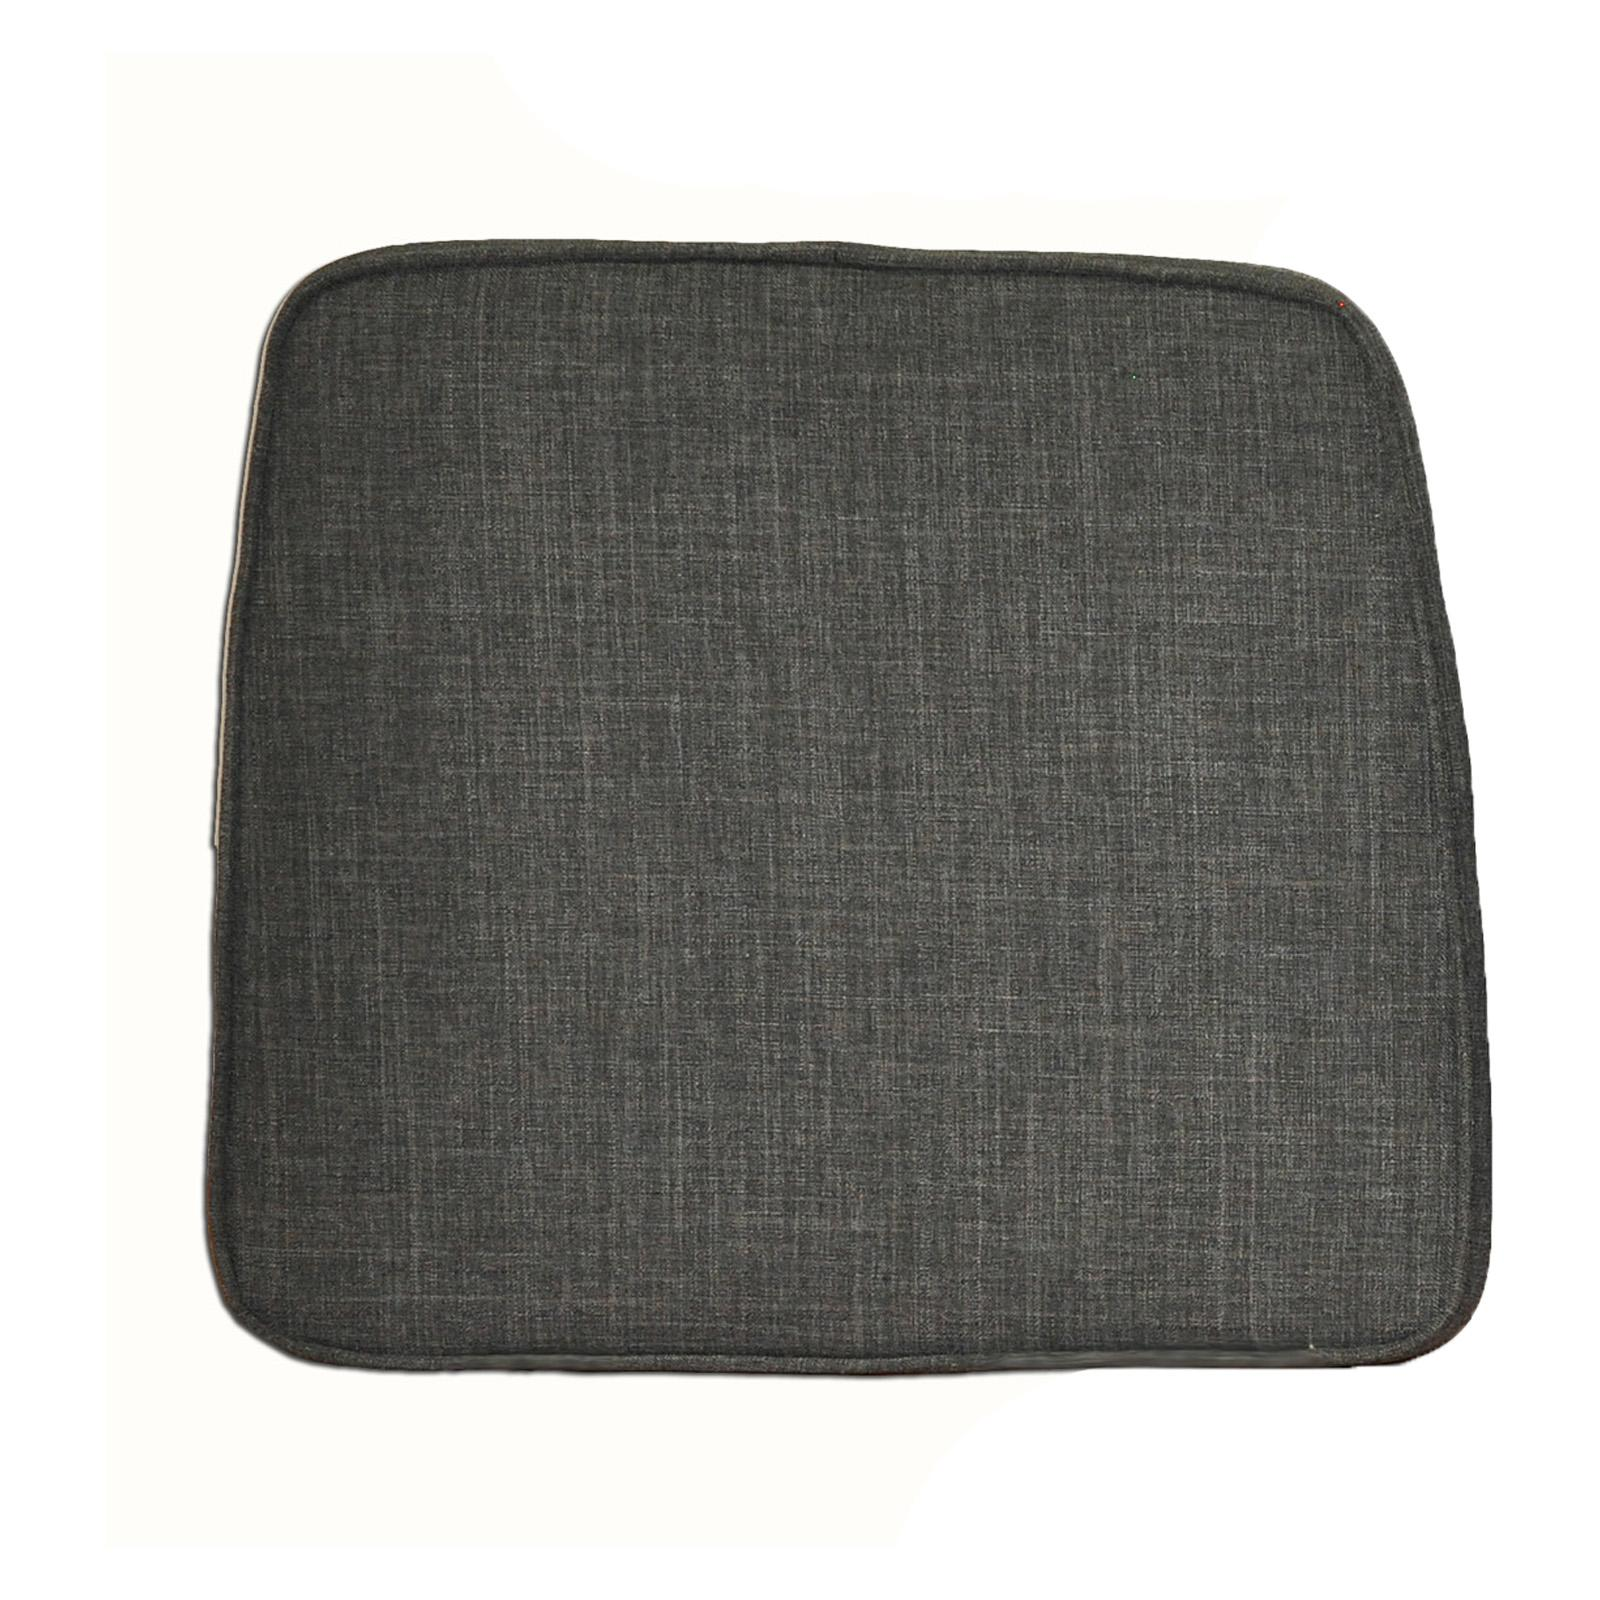 ECI Dacron Top with Memory Foam Seat Pad for Stool - Set of 2 Gray - ECI493-2